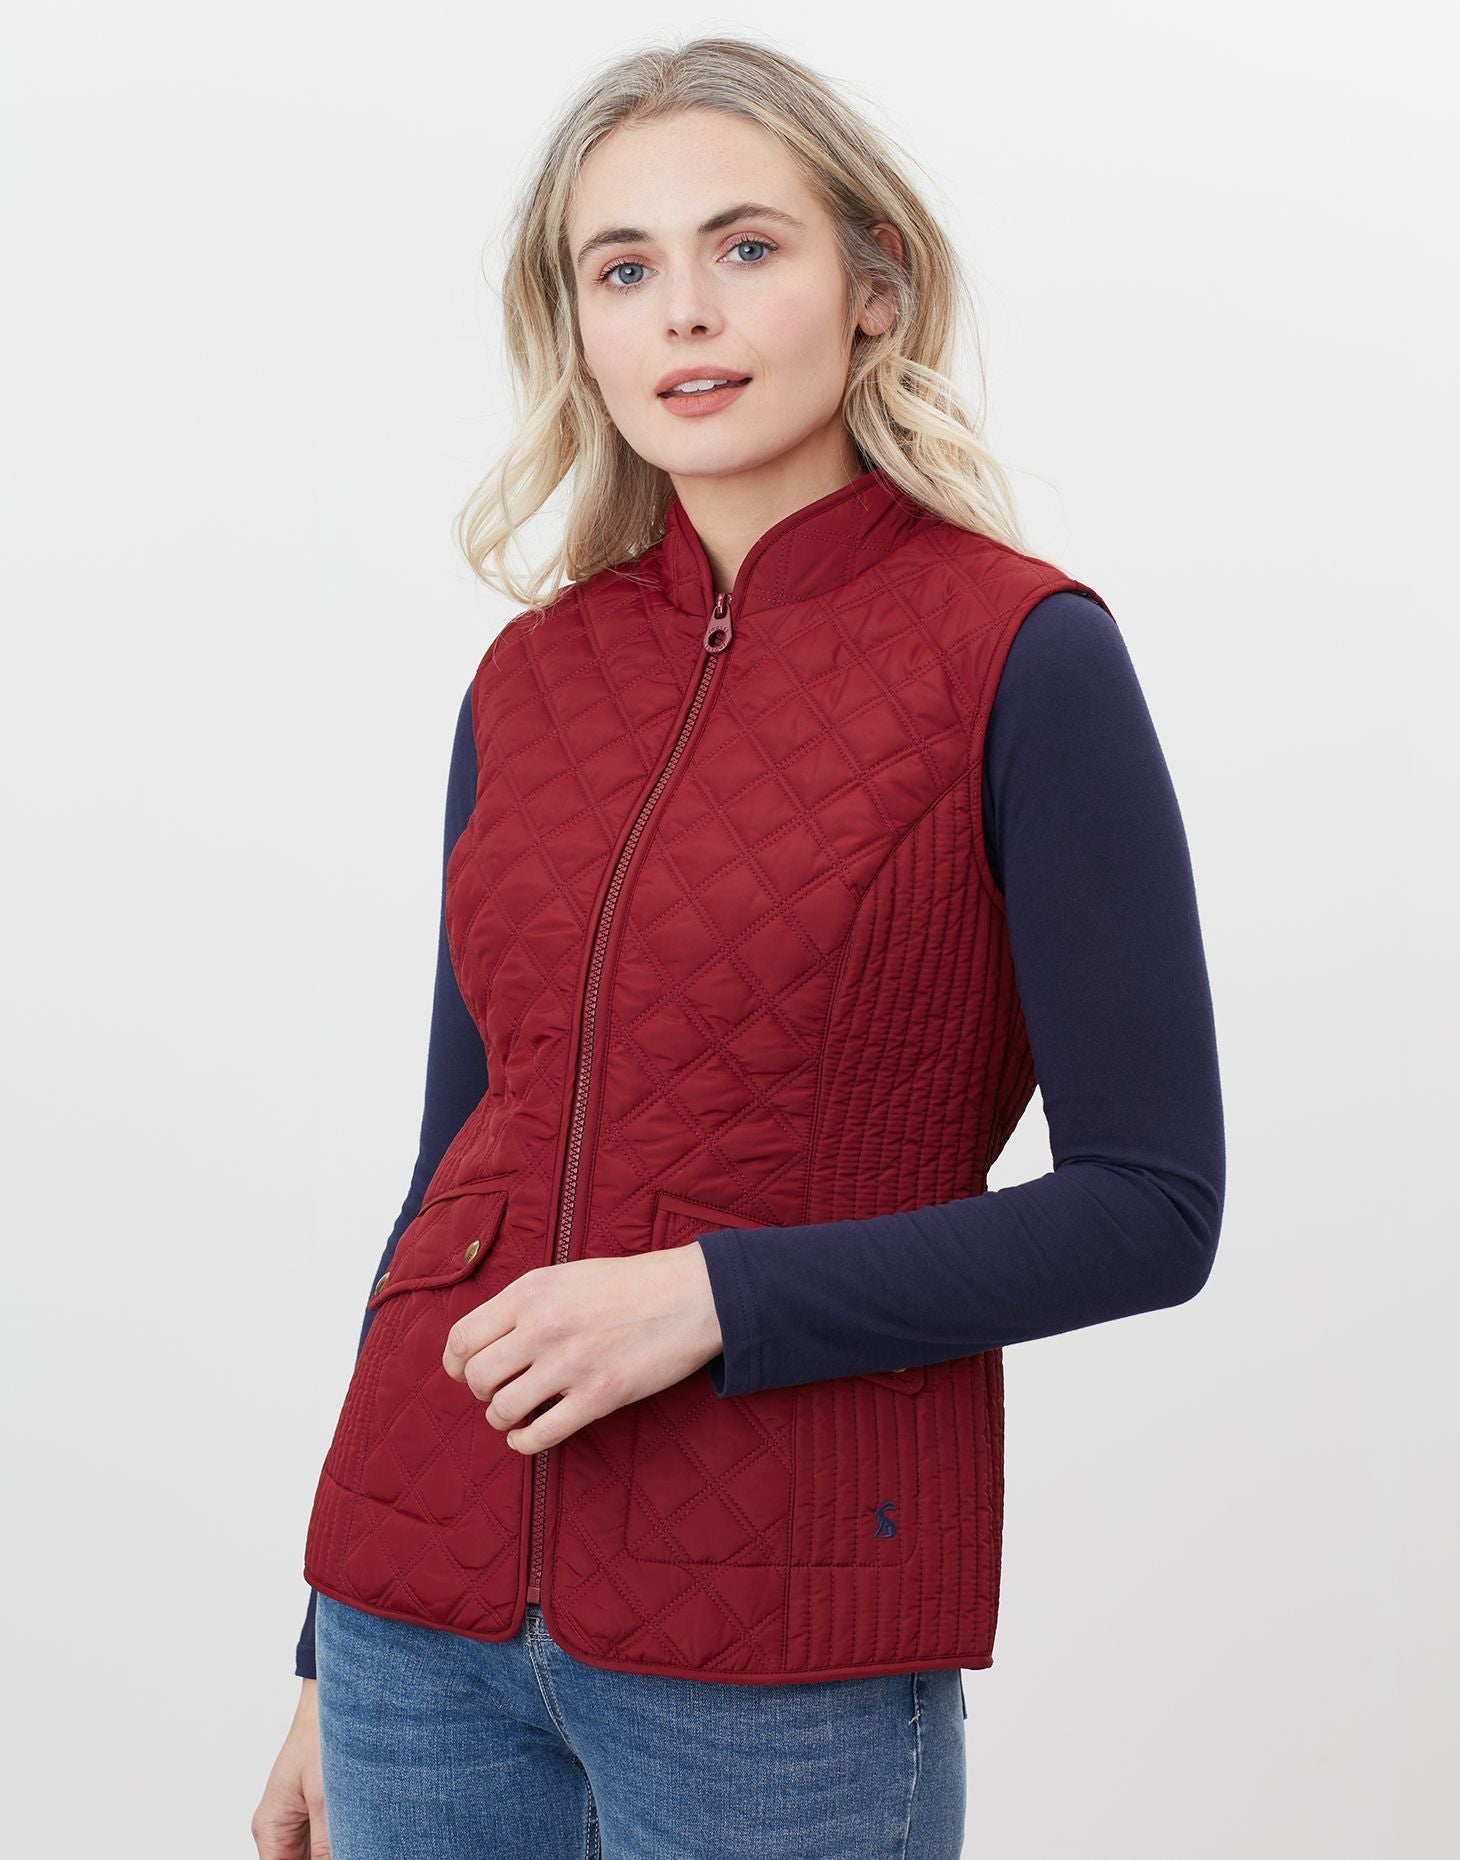 Minx Quilted Gilet in Burgundy